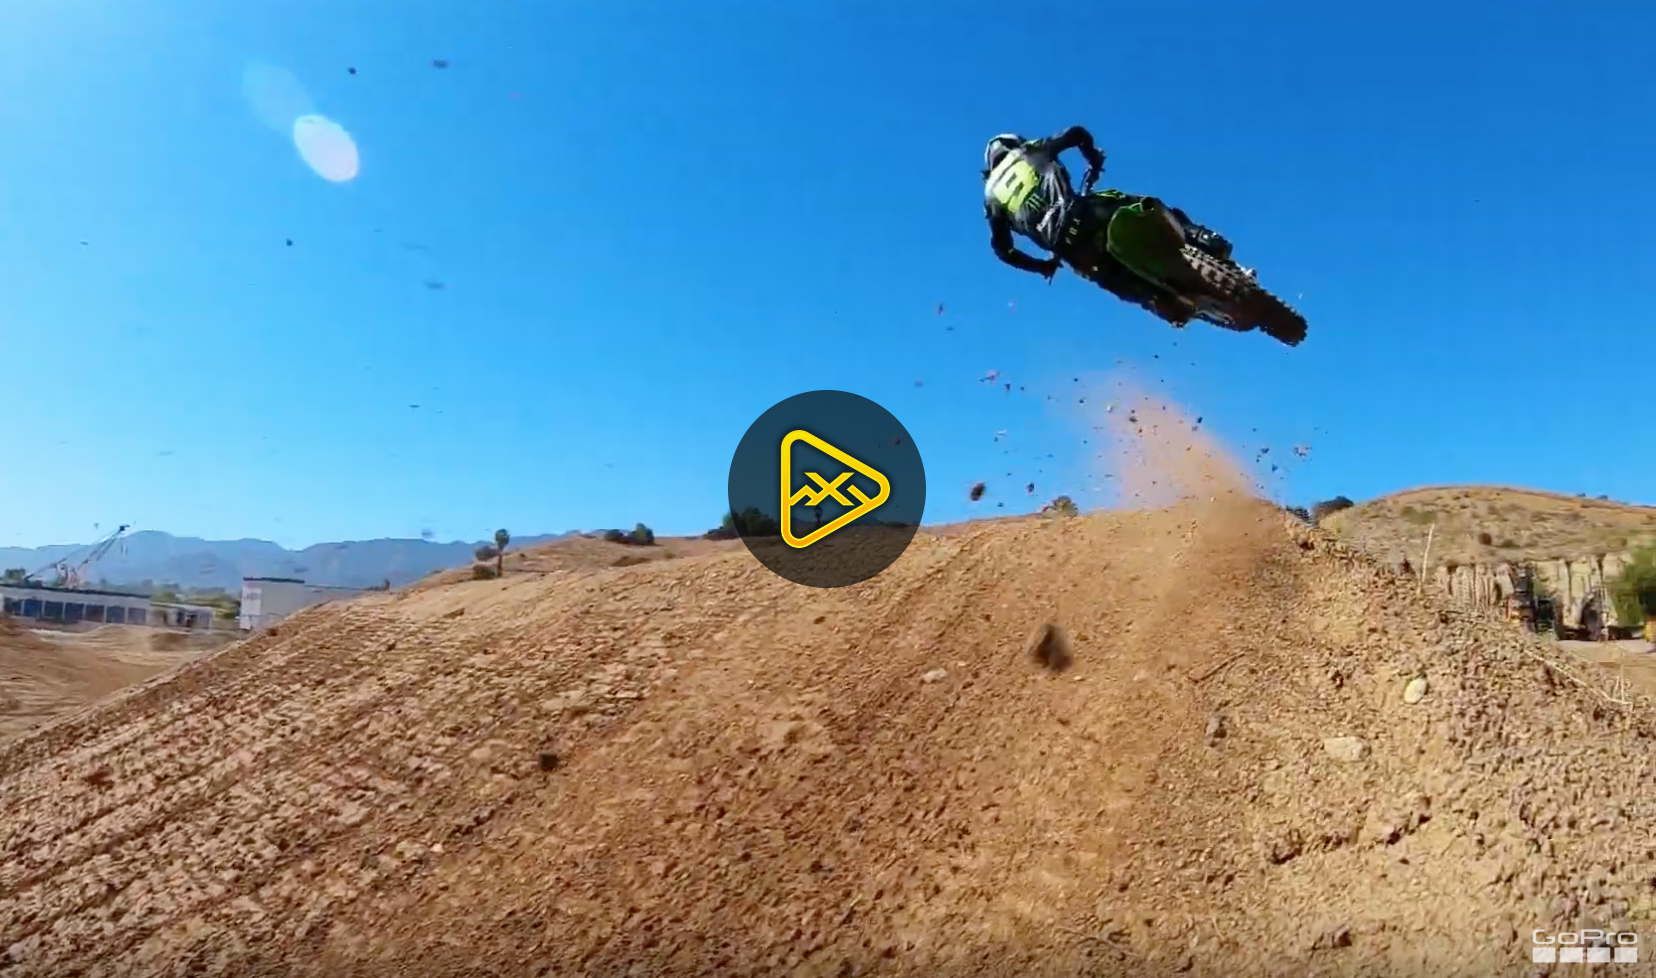 450 Track Day with #9 Adam Cianciarulo